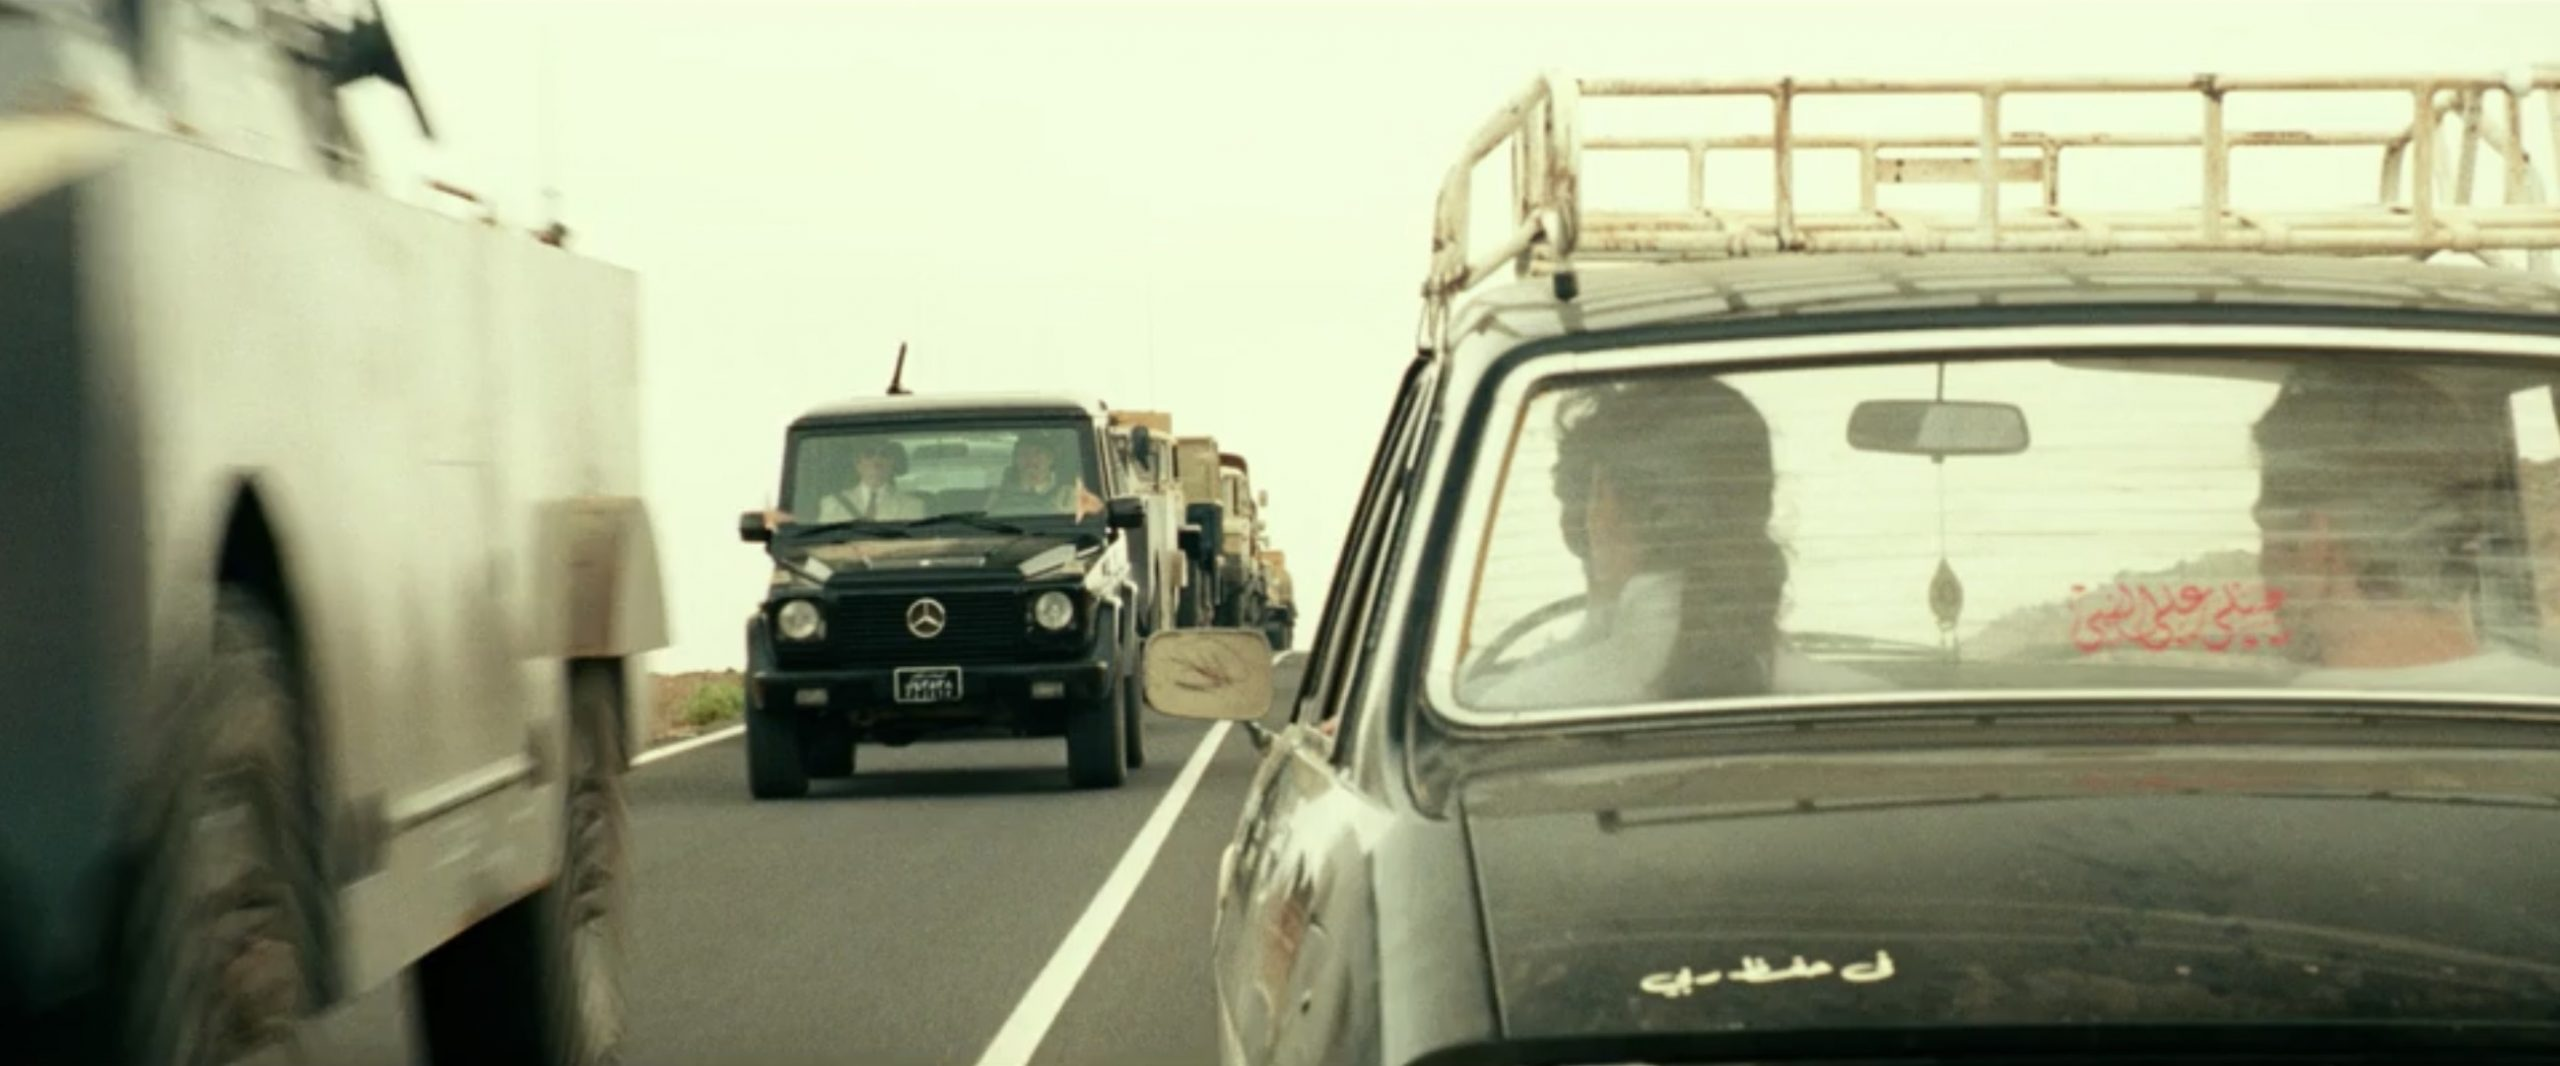 Mercedes G Wagon and Taxi chase scene action